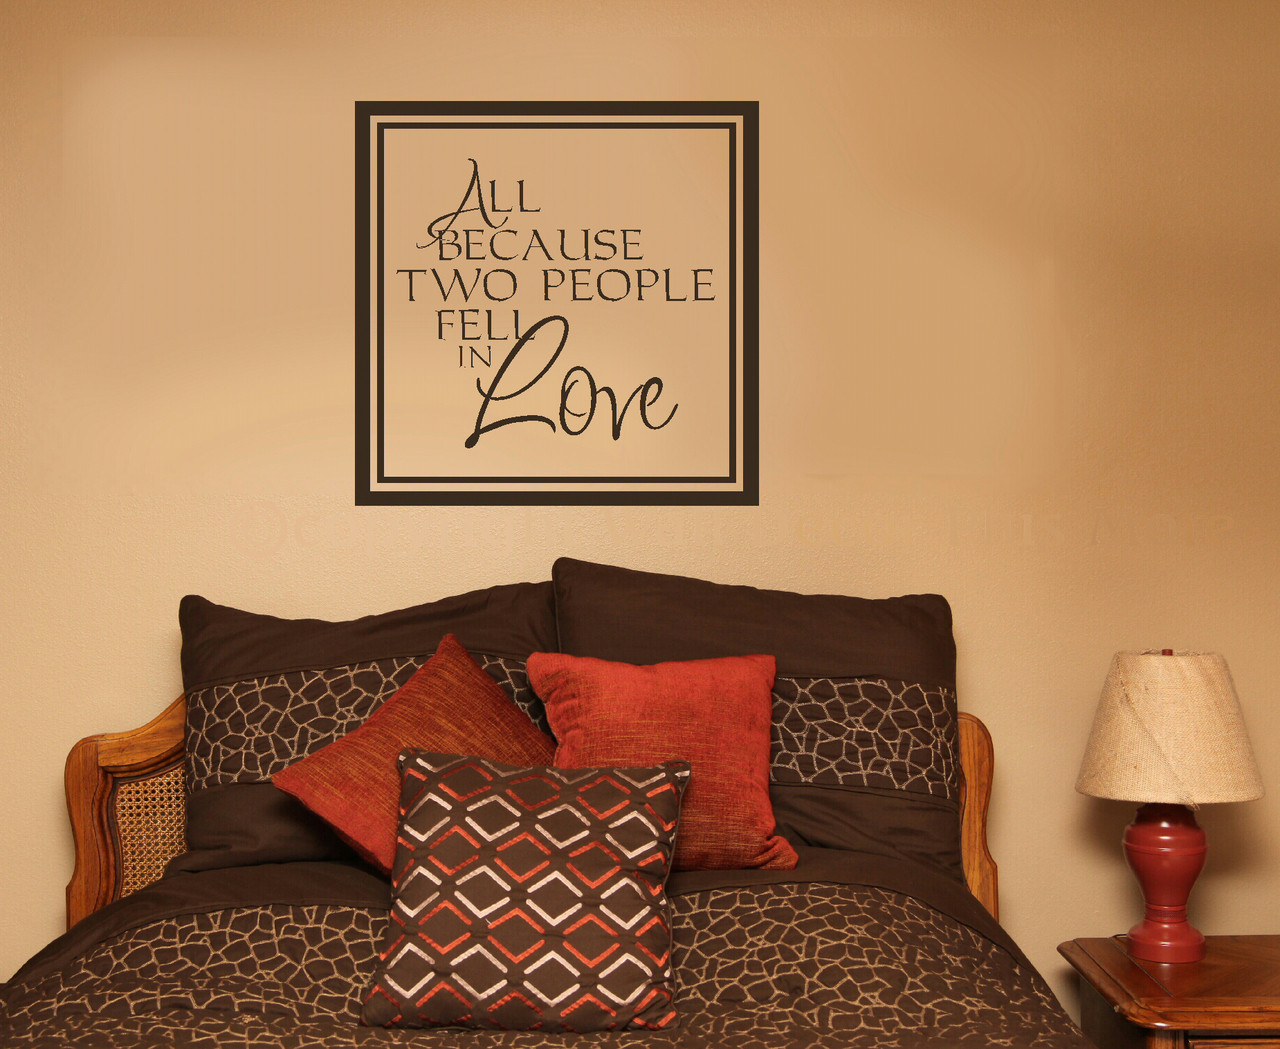 All Because Two People Fell In Love Quotes Wall Sticker Decals Sayings.  Loading Zoom